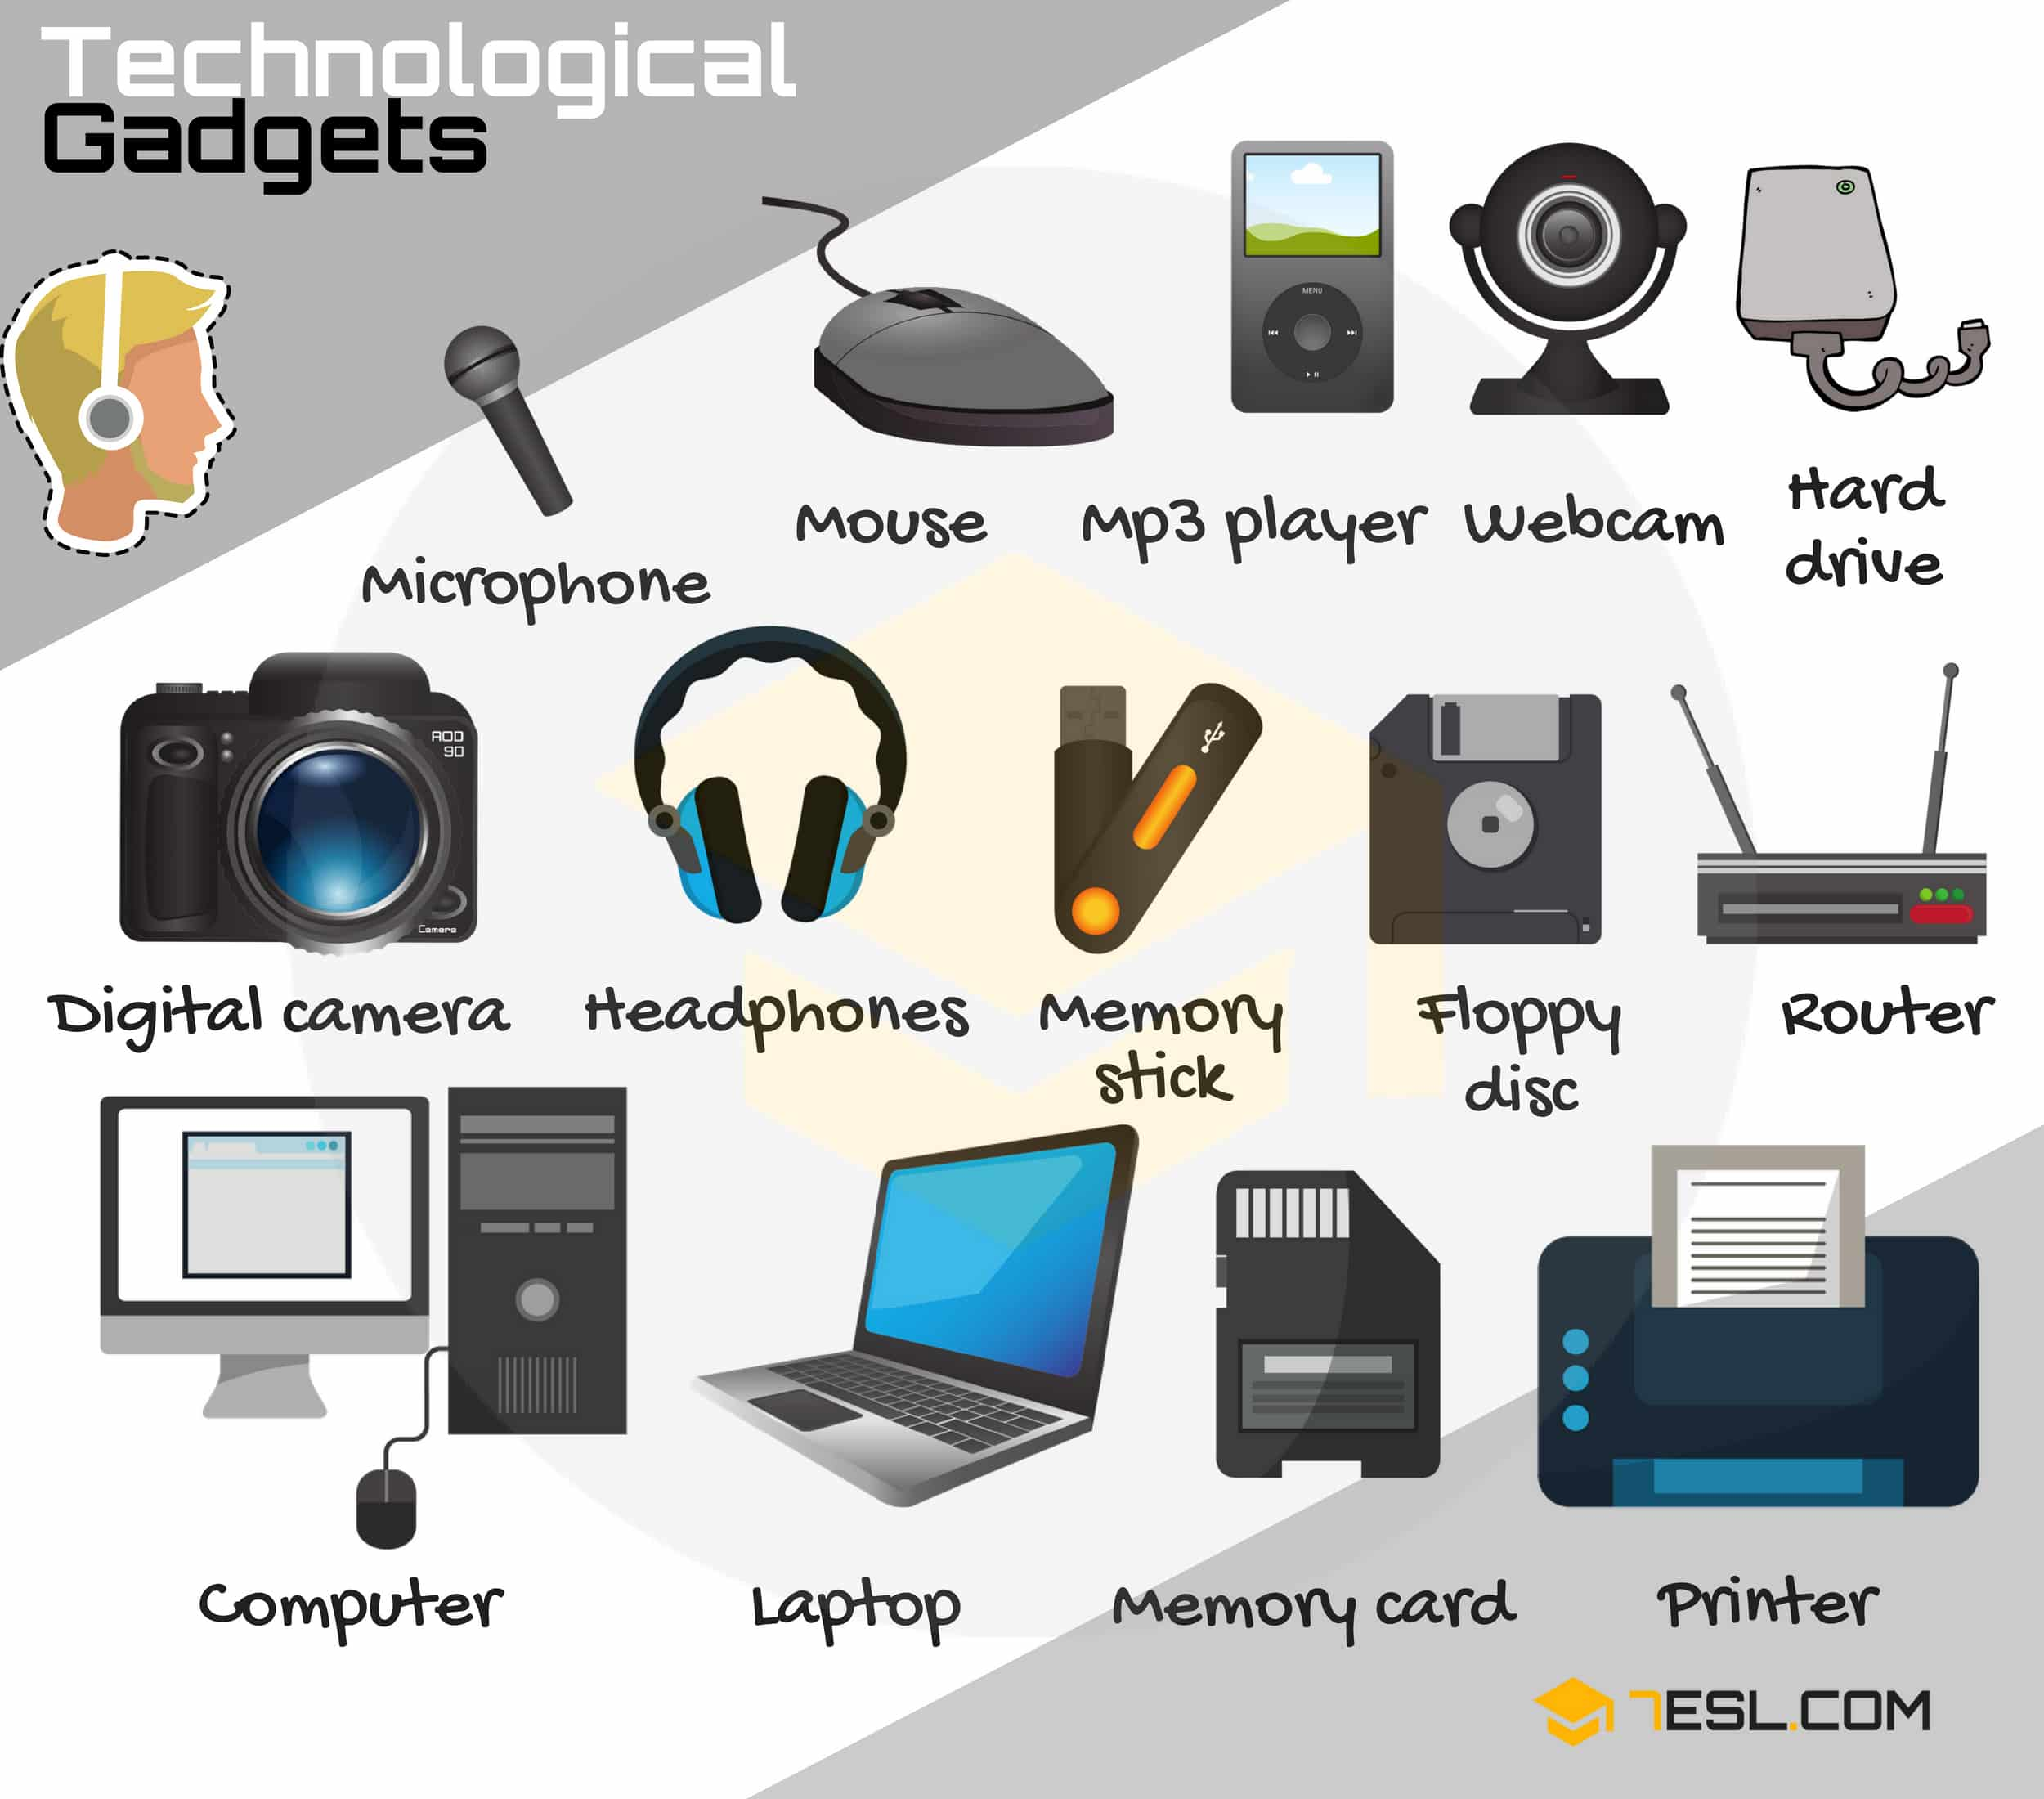 Technological Gadgets Vocabulary | Picture